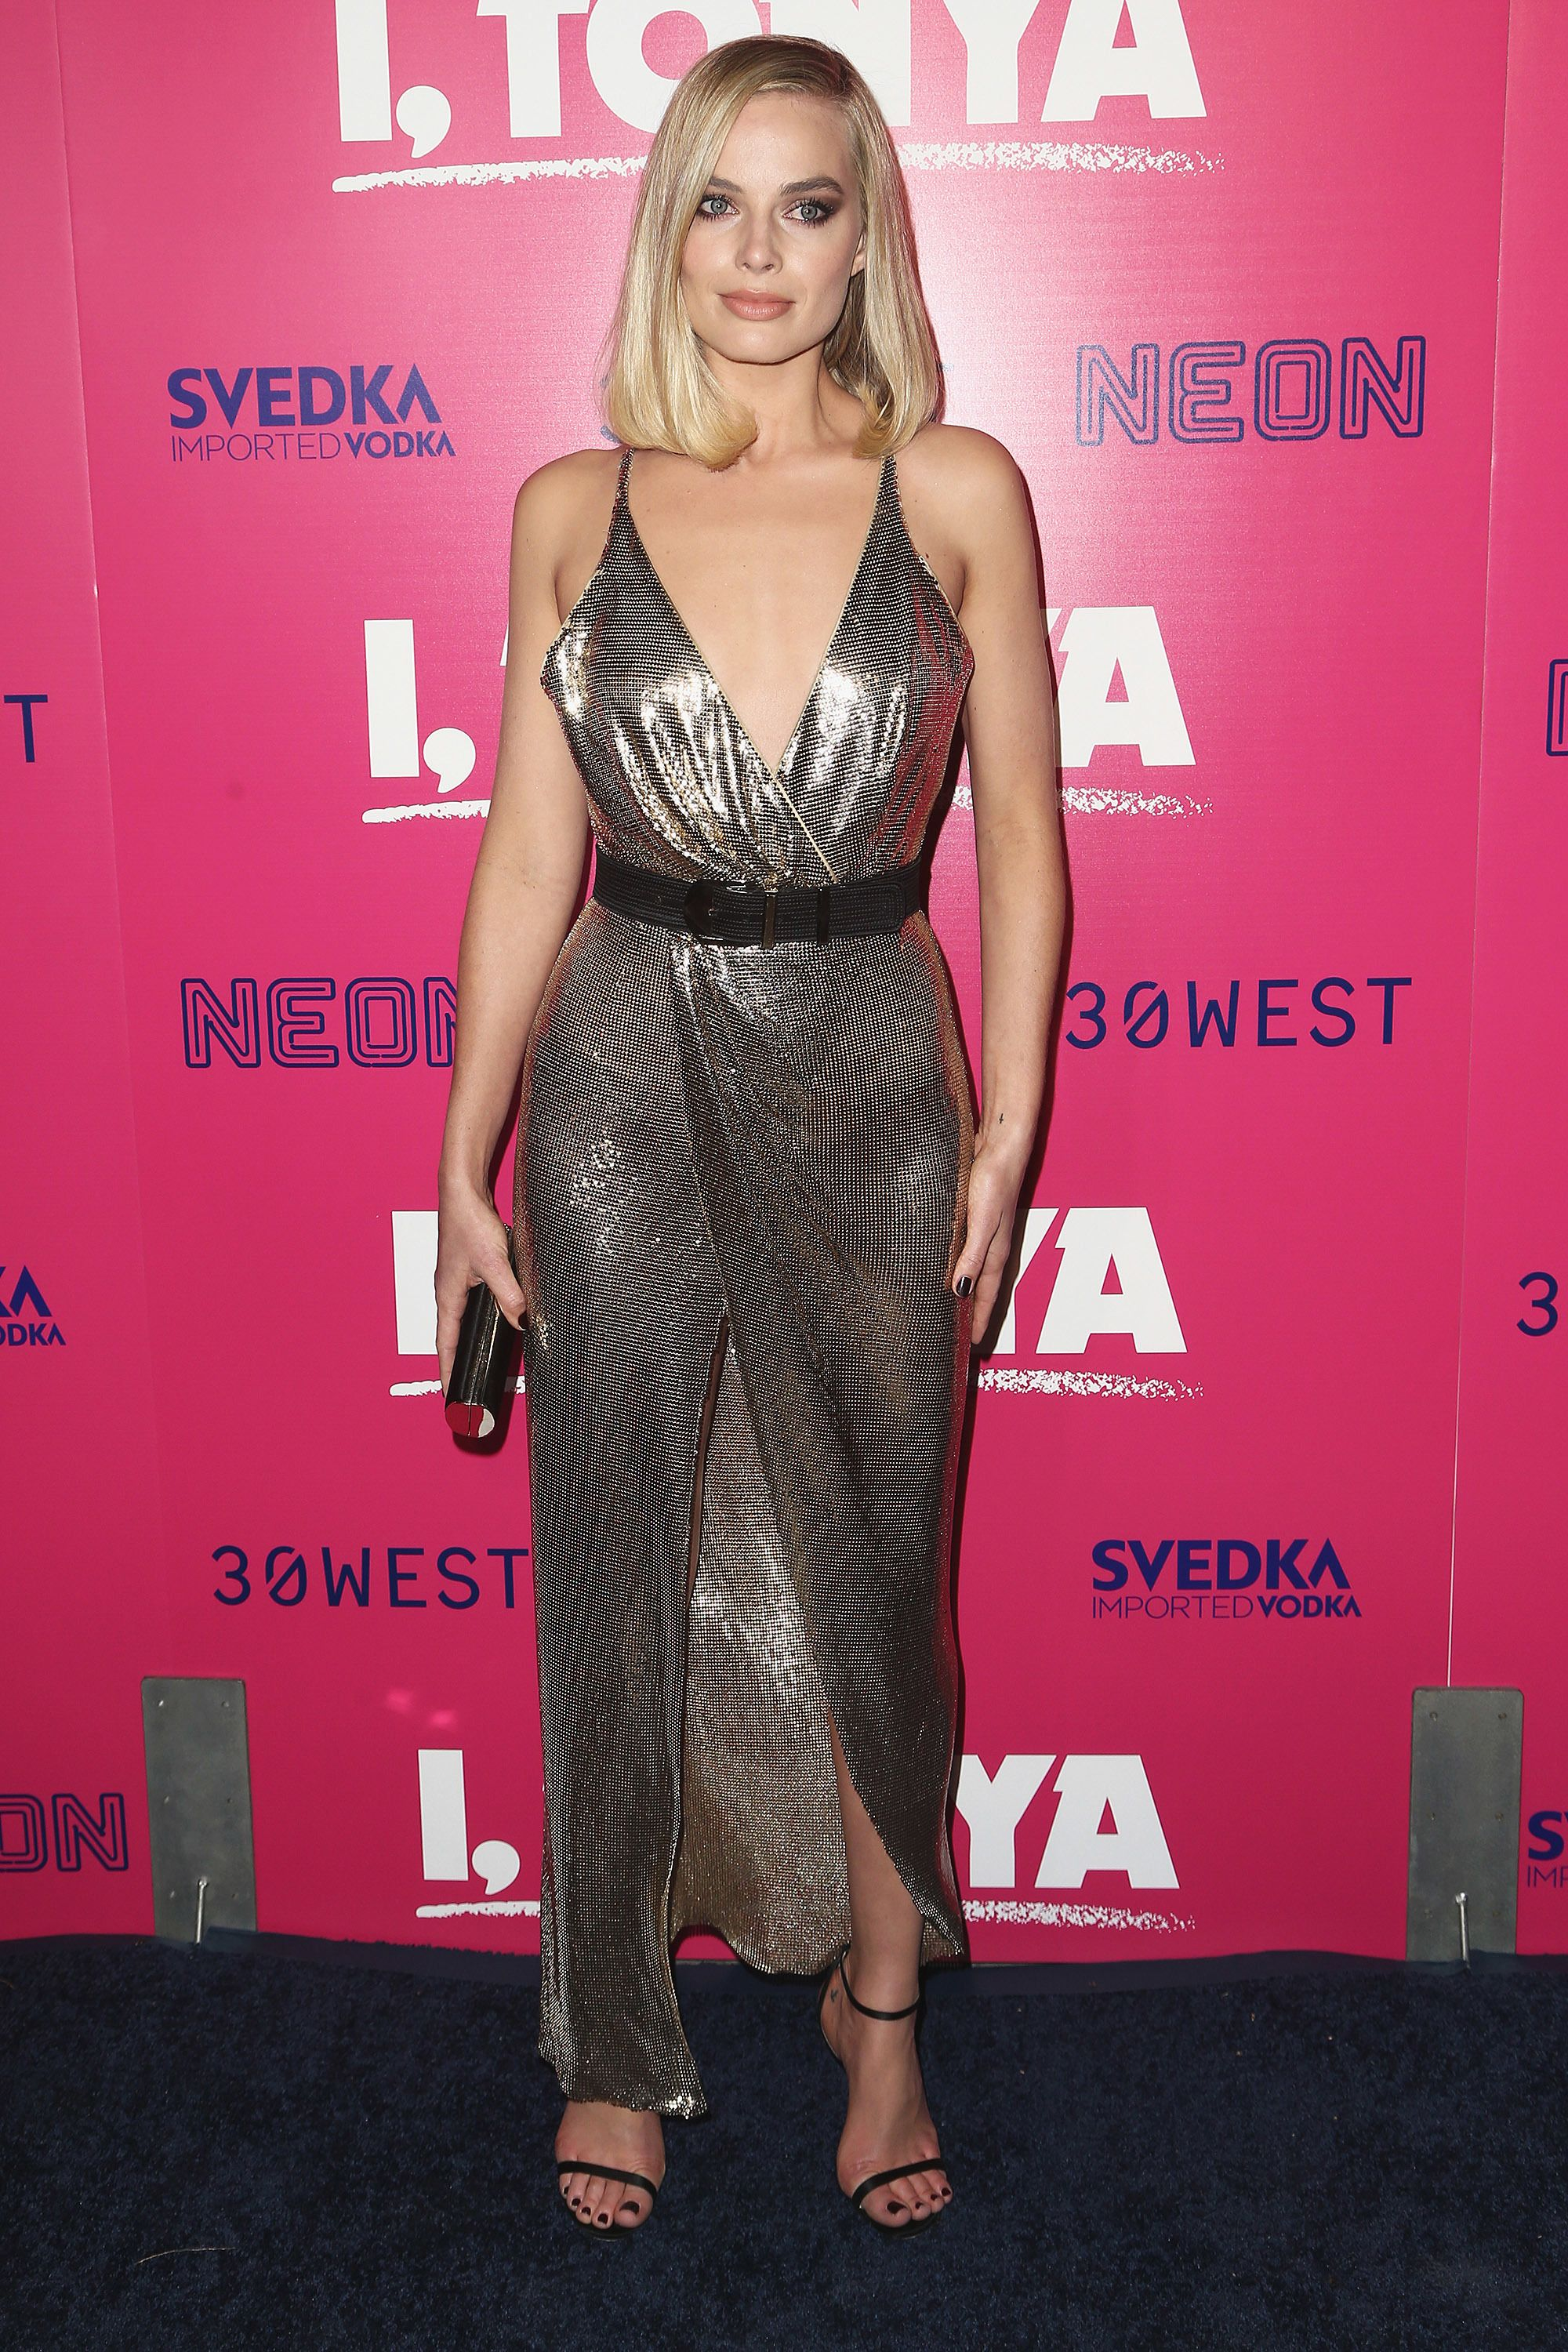 Forum on this topic: Selena gomez at we day california in los angeles, margot-robbie-feet/